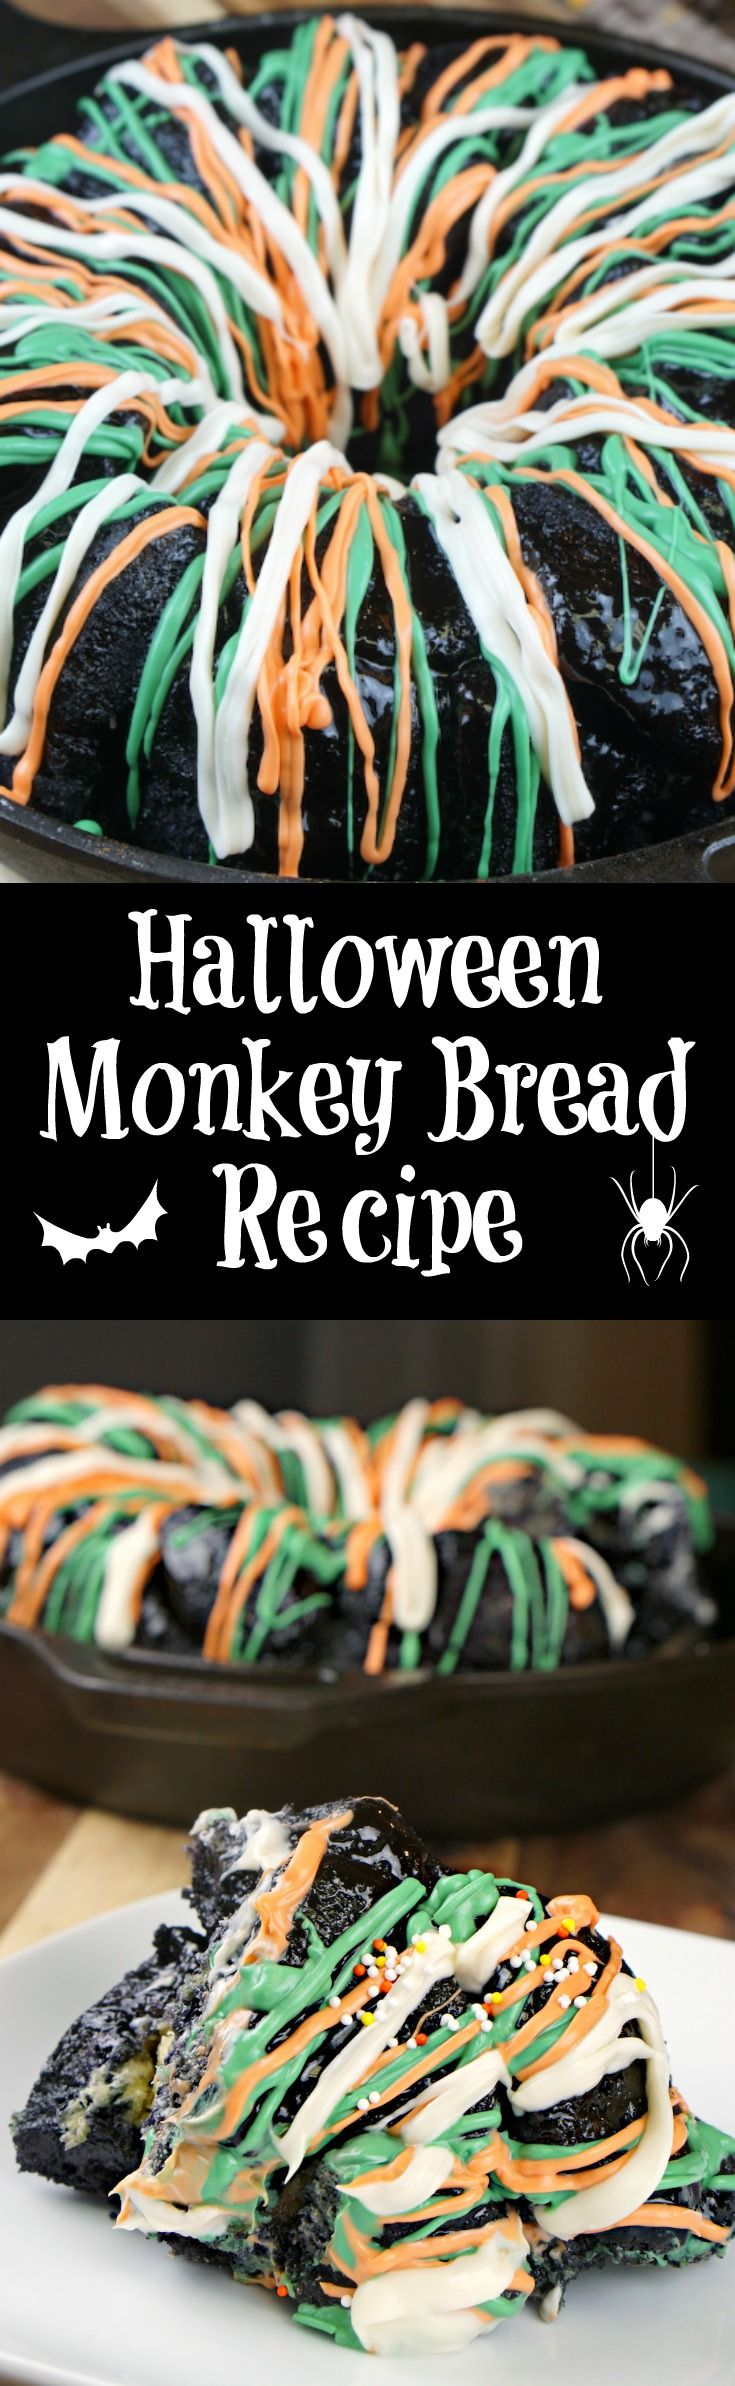 Simple Monkey Bread Recipe for Halloween - DIY Candy